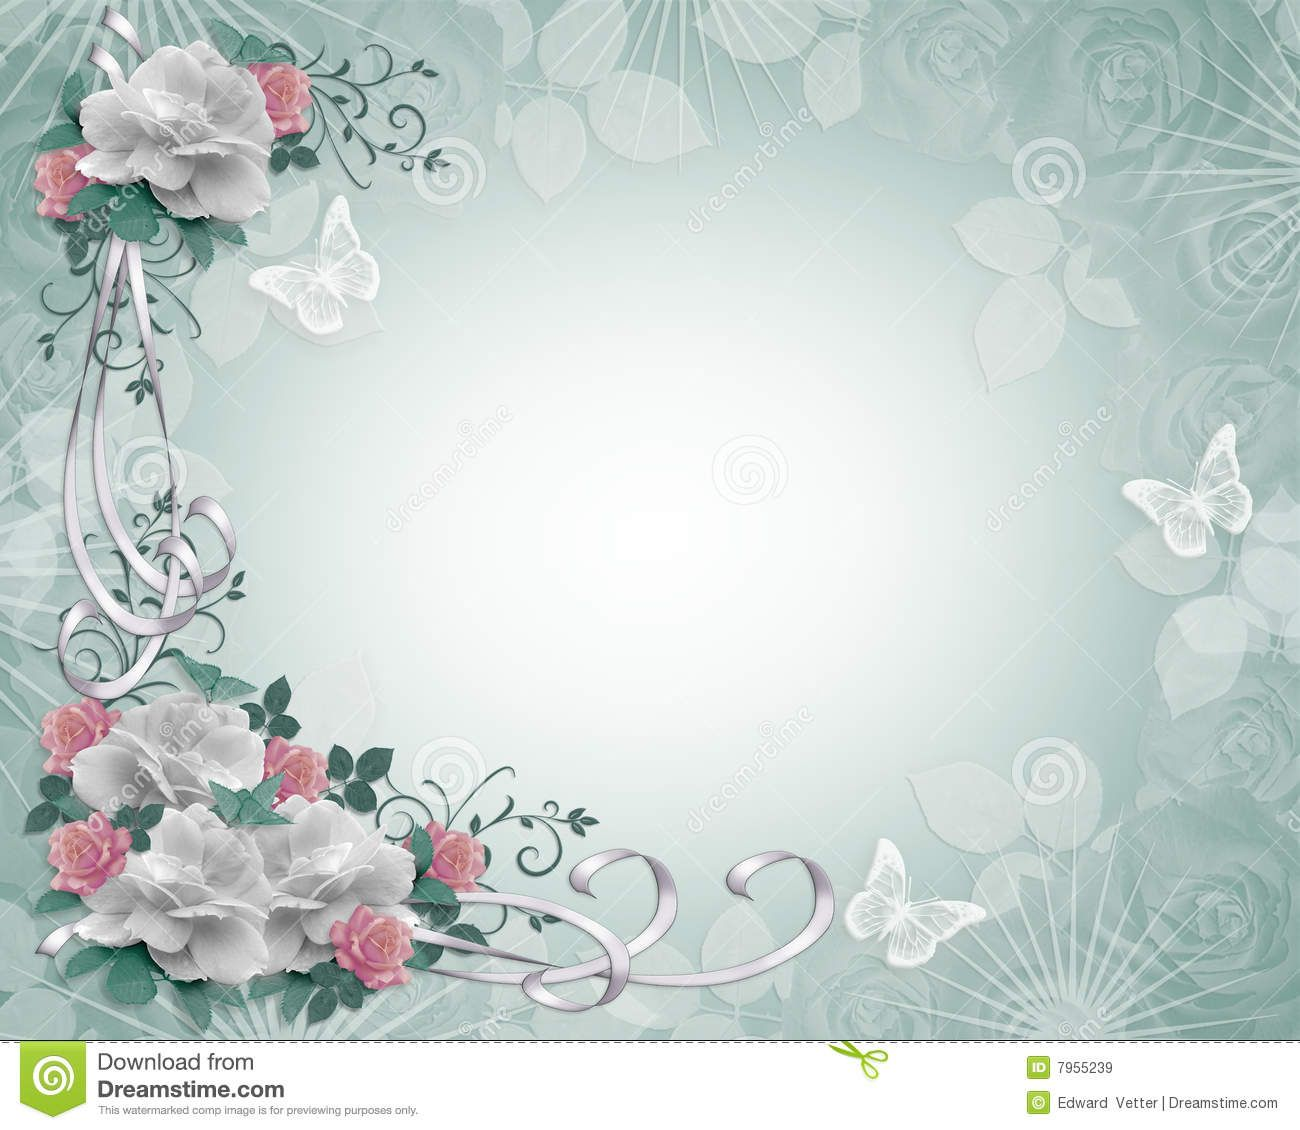 wedding templates free google search - Wedding Invitation Background